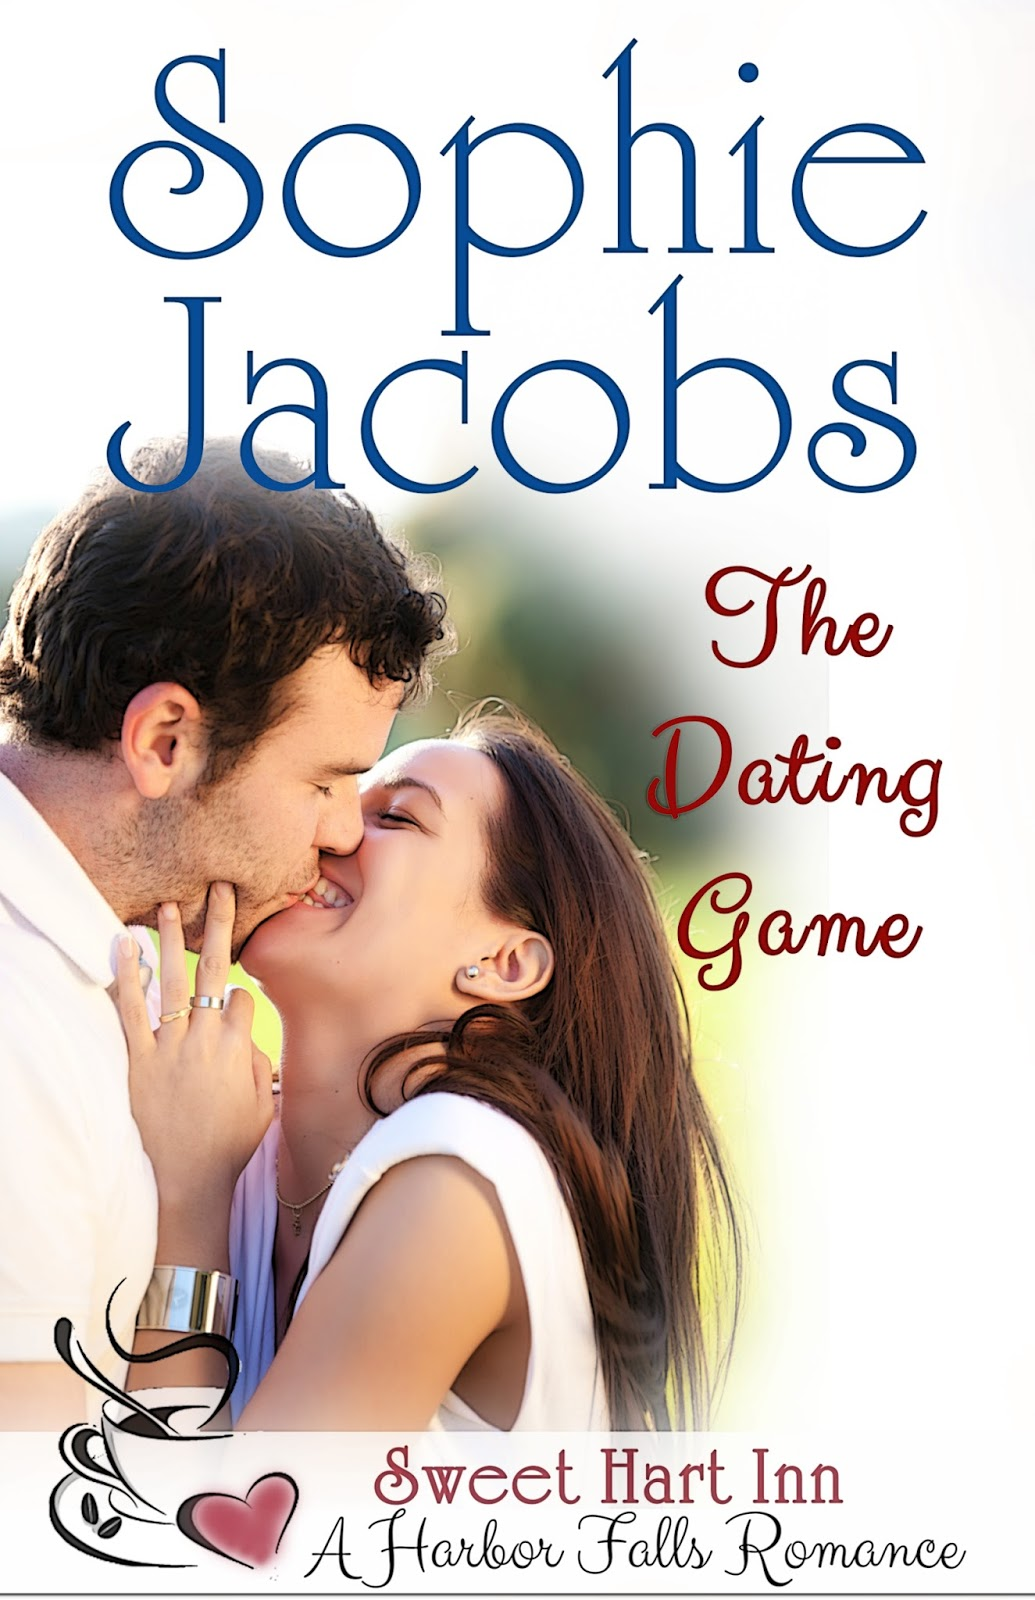 The dating game book website